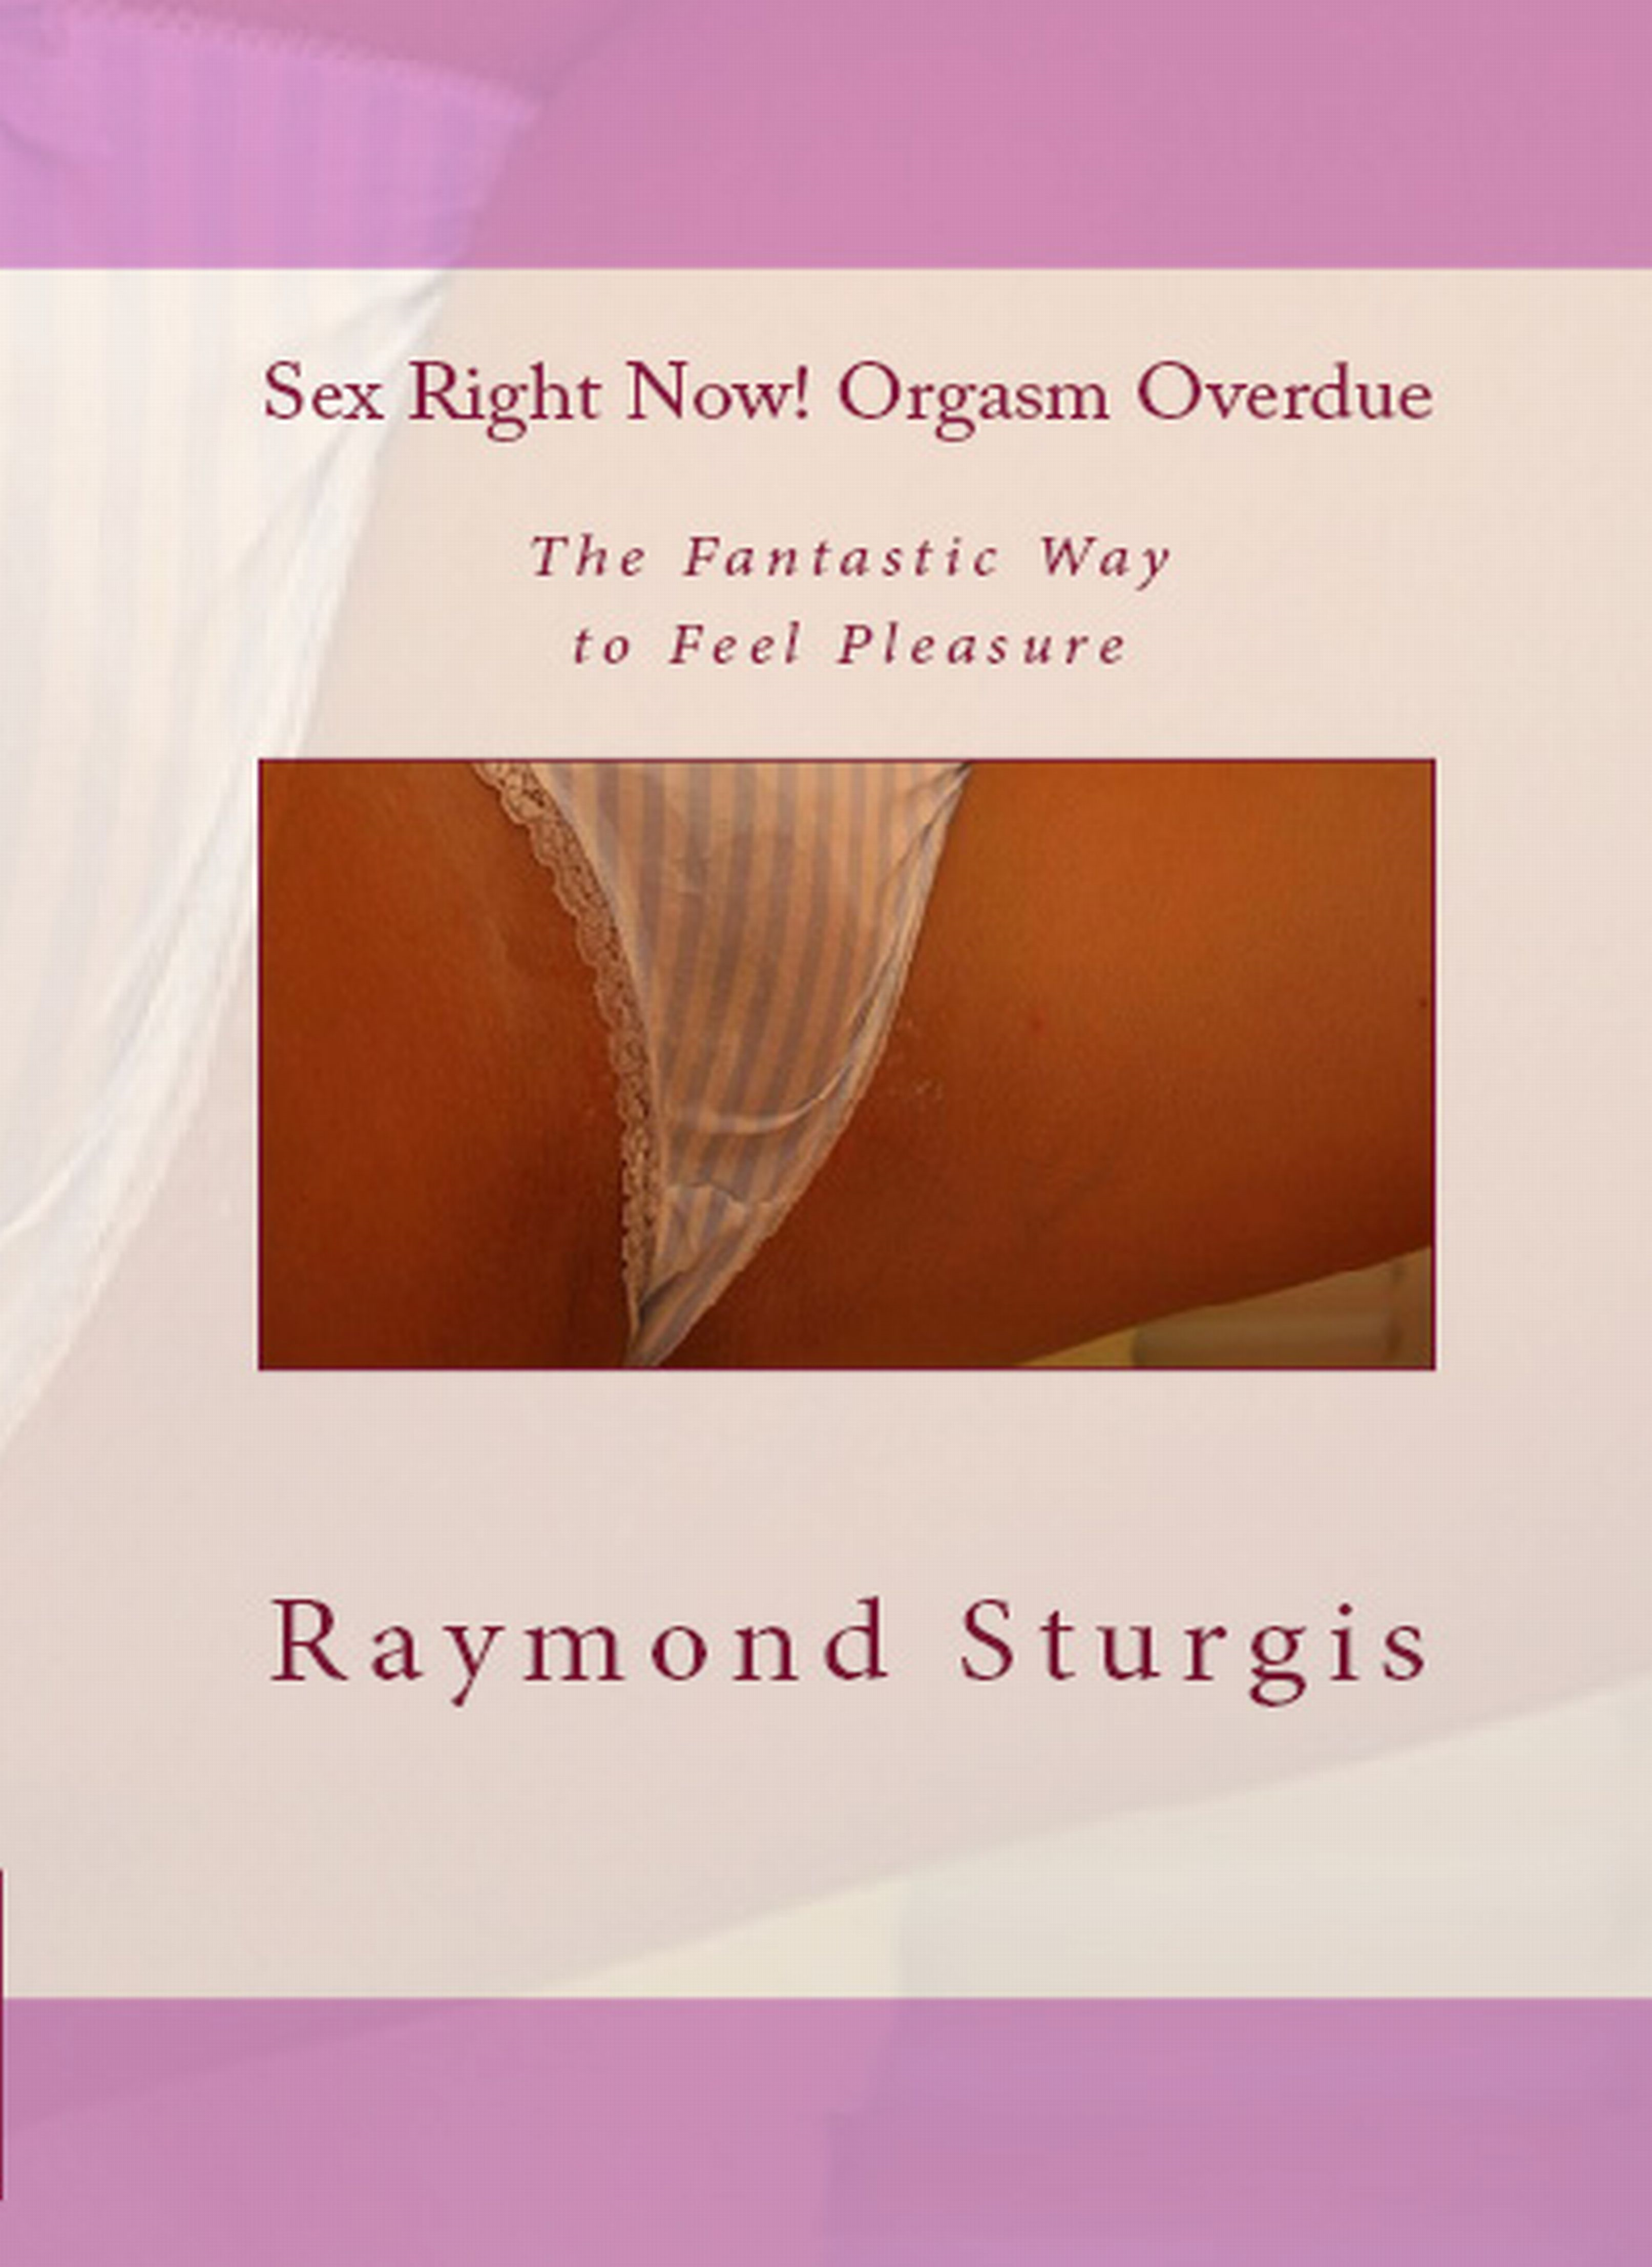 Sex Right Now! Orgasm Overdue By: Raymond Sturgis